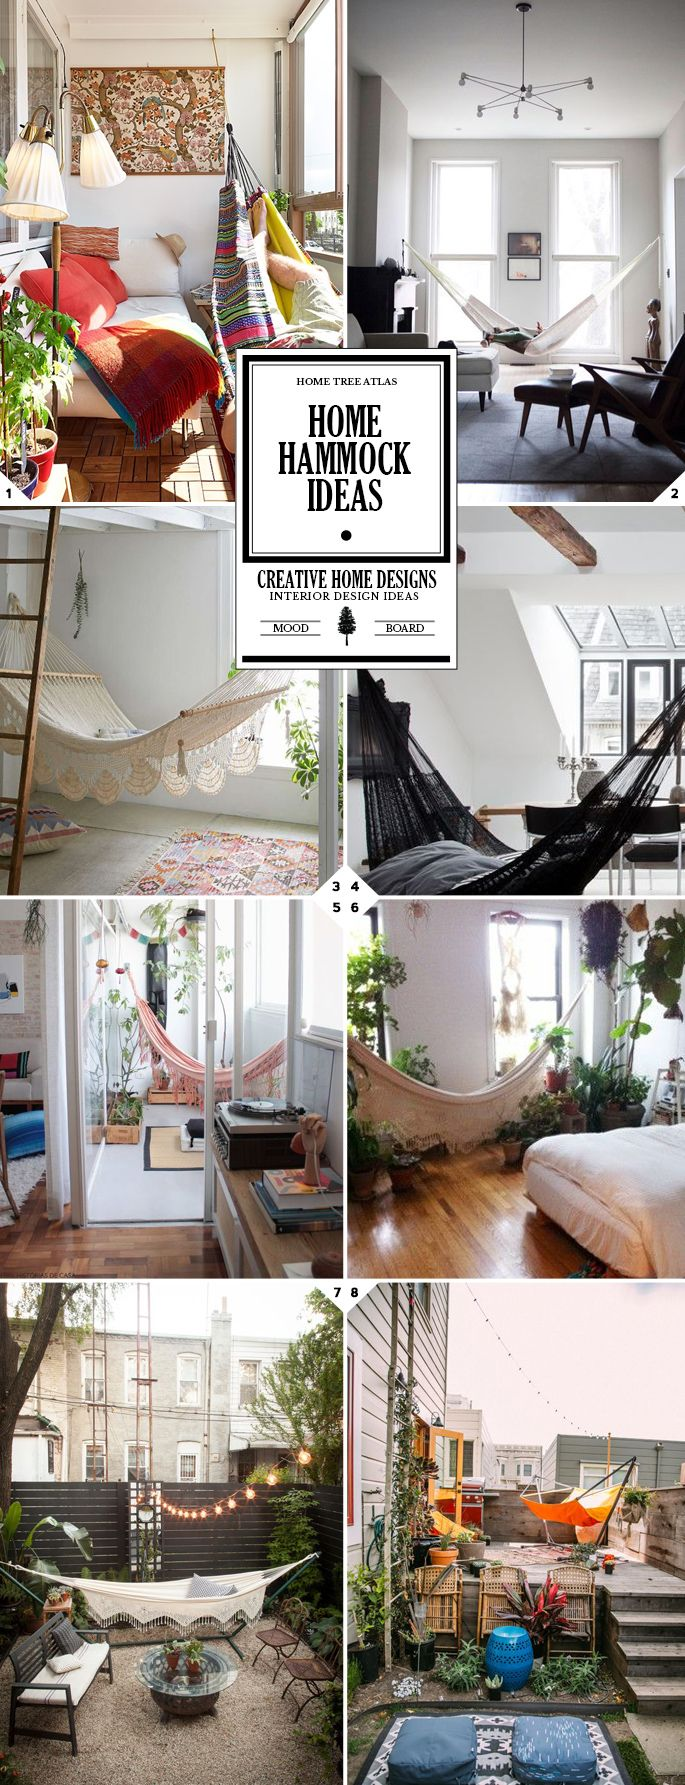 Itu0027s Not Very Common For People To Hang An Indoor Hammock In Their Home.  Maybeu2026